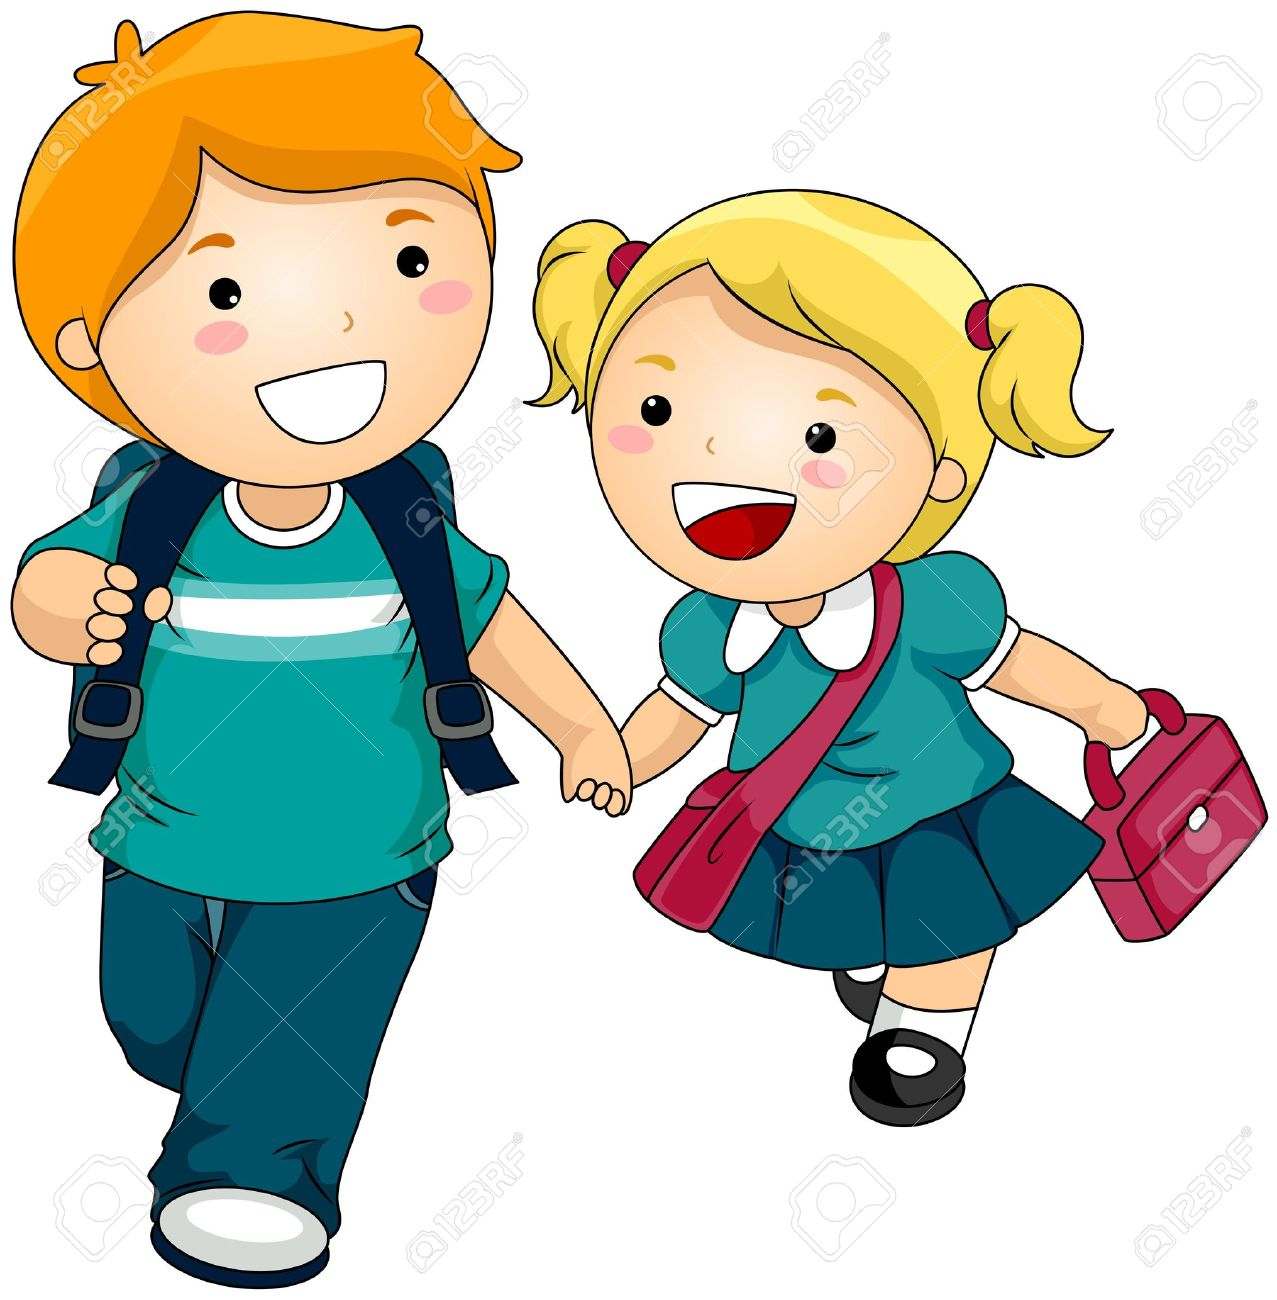 Siblings clipart 3 » Clipart Station.